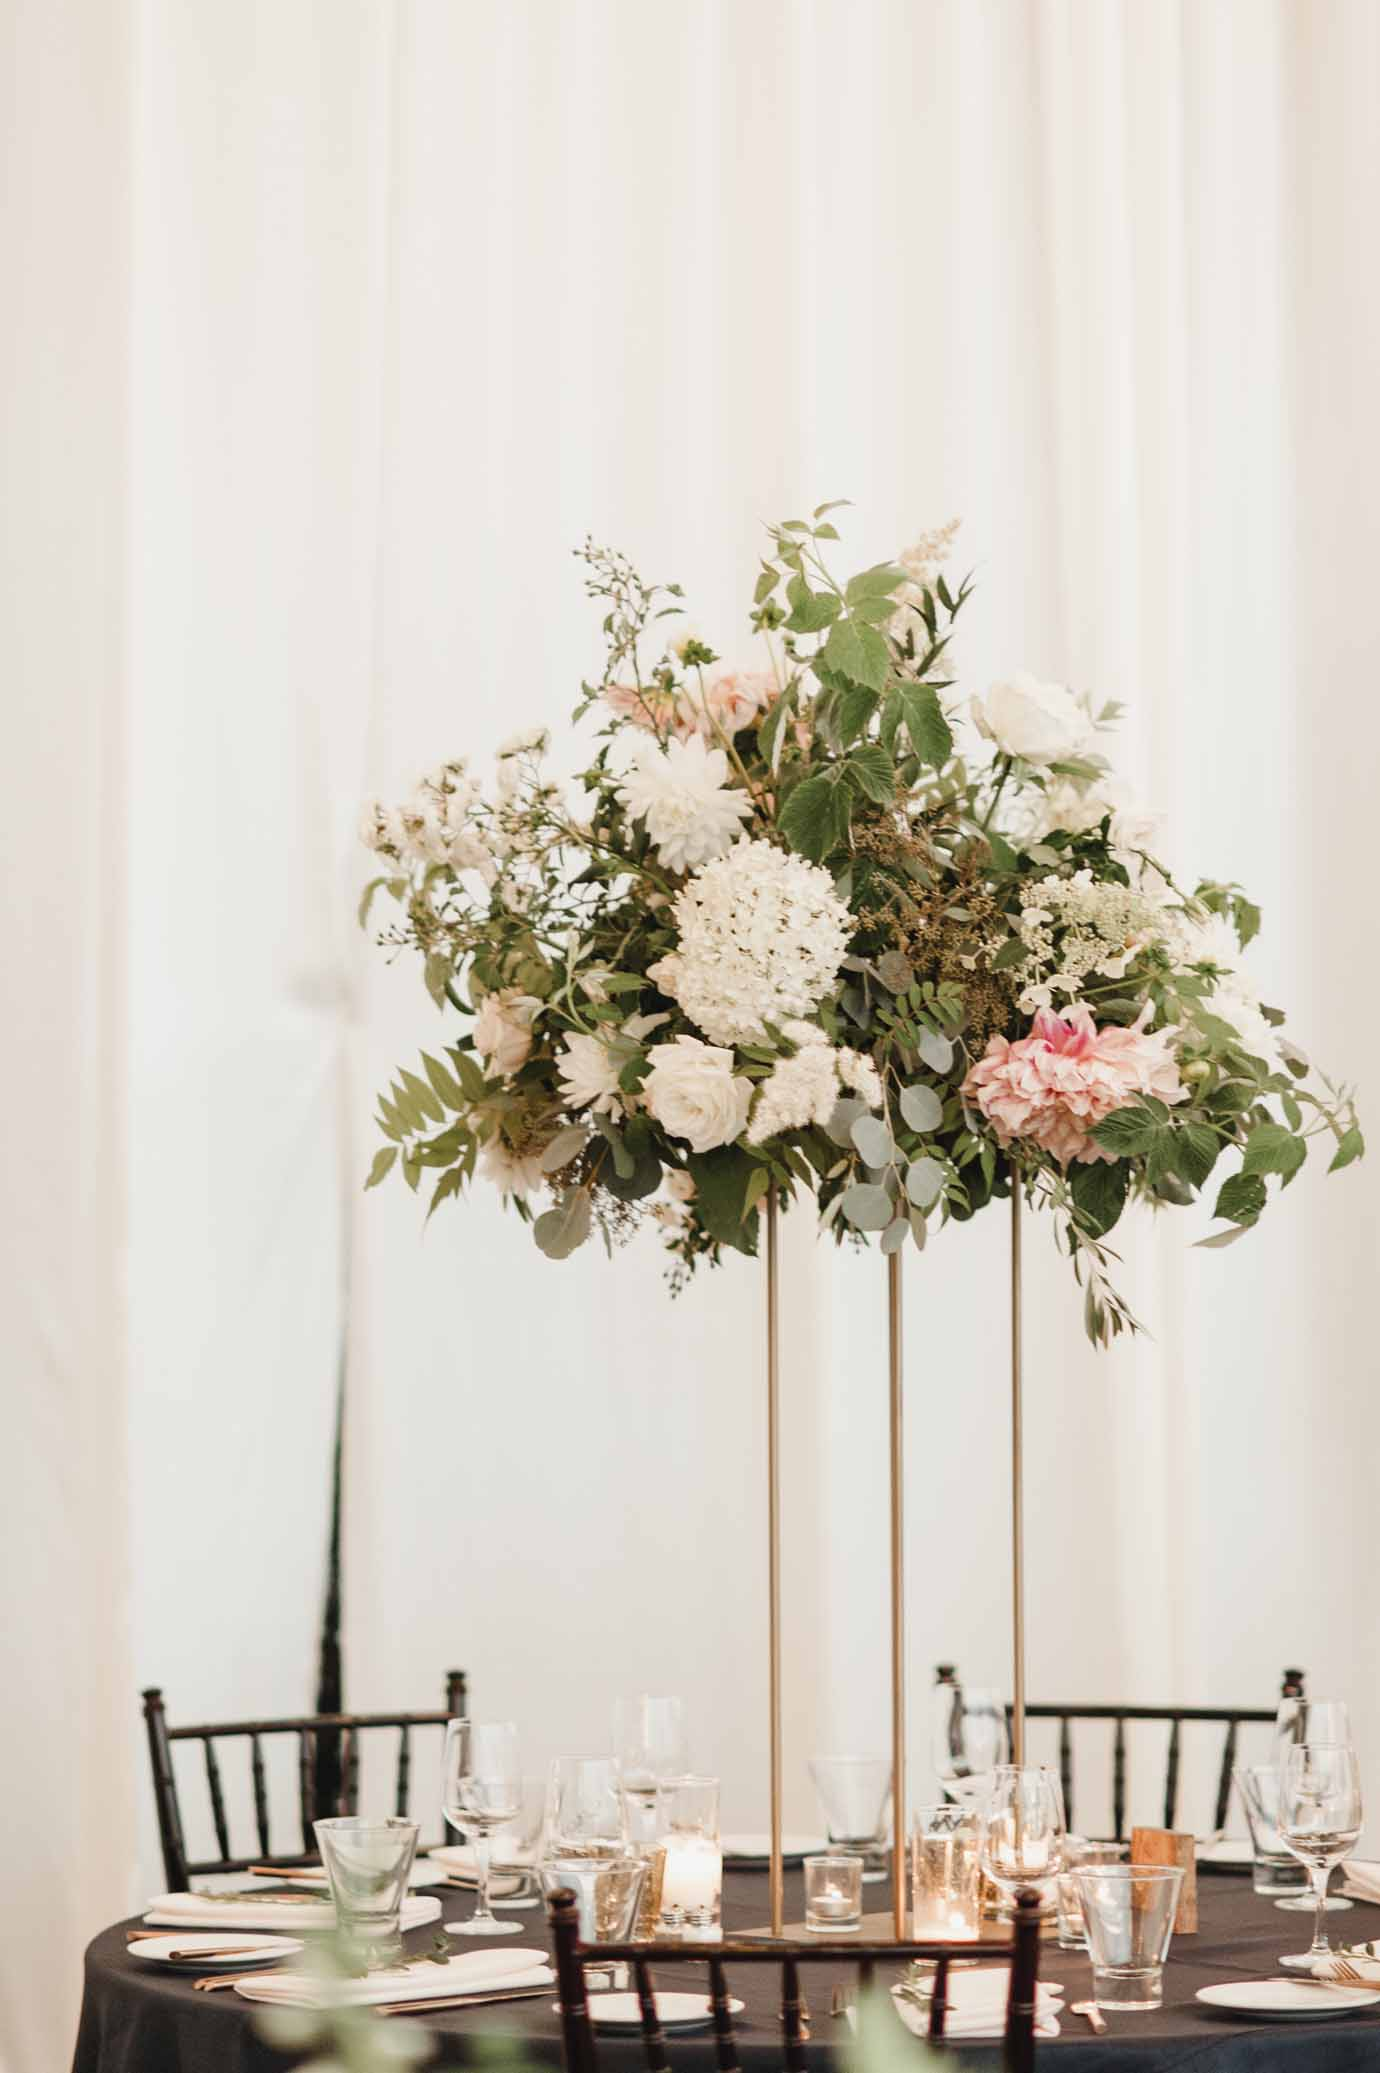 Elevated centerpiece with greenery on gold Harlow stand - Flora Nova Design